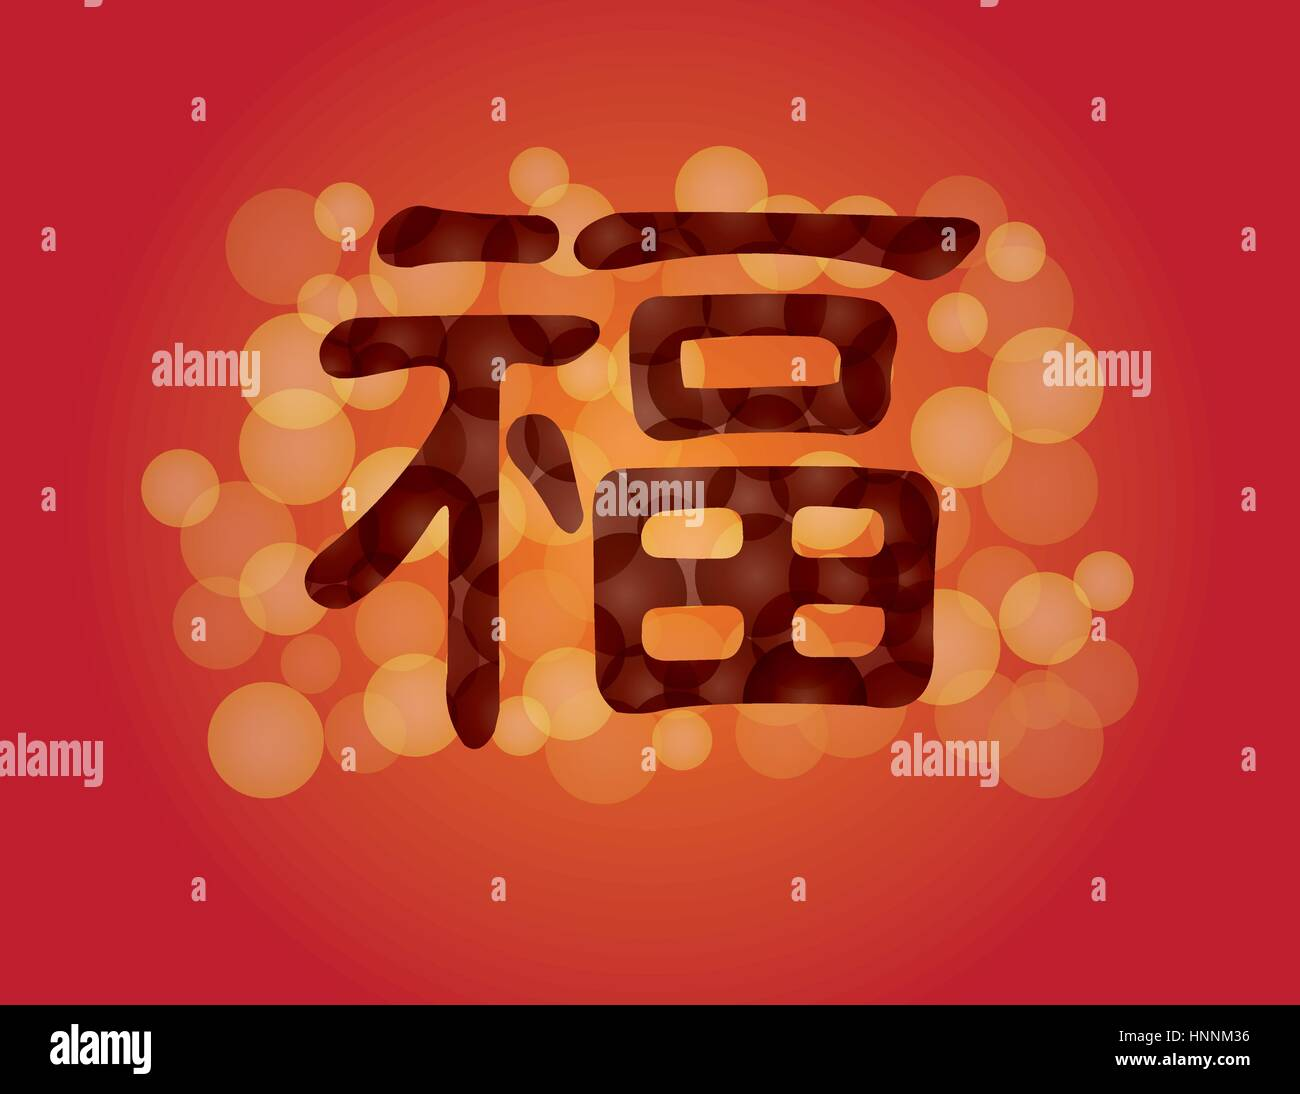 Chinese good fortune text symbol with eternity circle pattern stock chinese good fortune text symbol with eternity circle pattern illustration buycottarizona Images